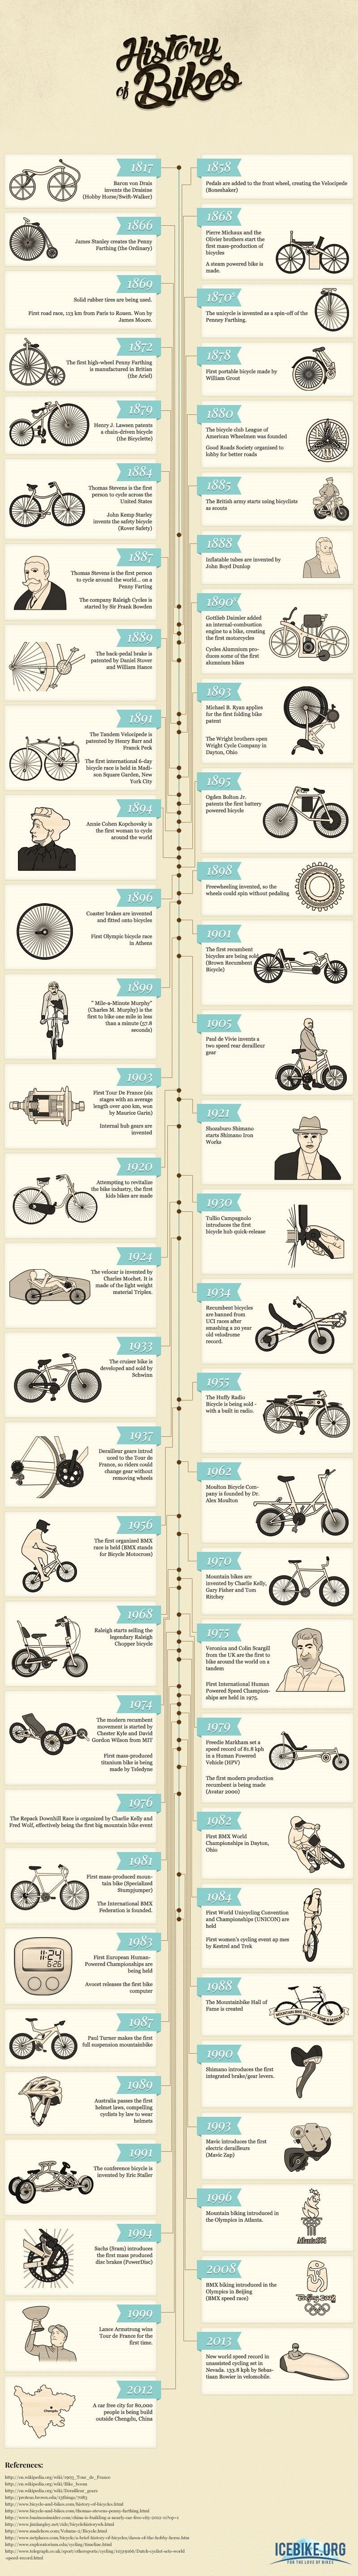 The History of Bikes #infographic